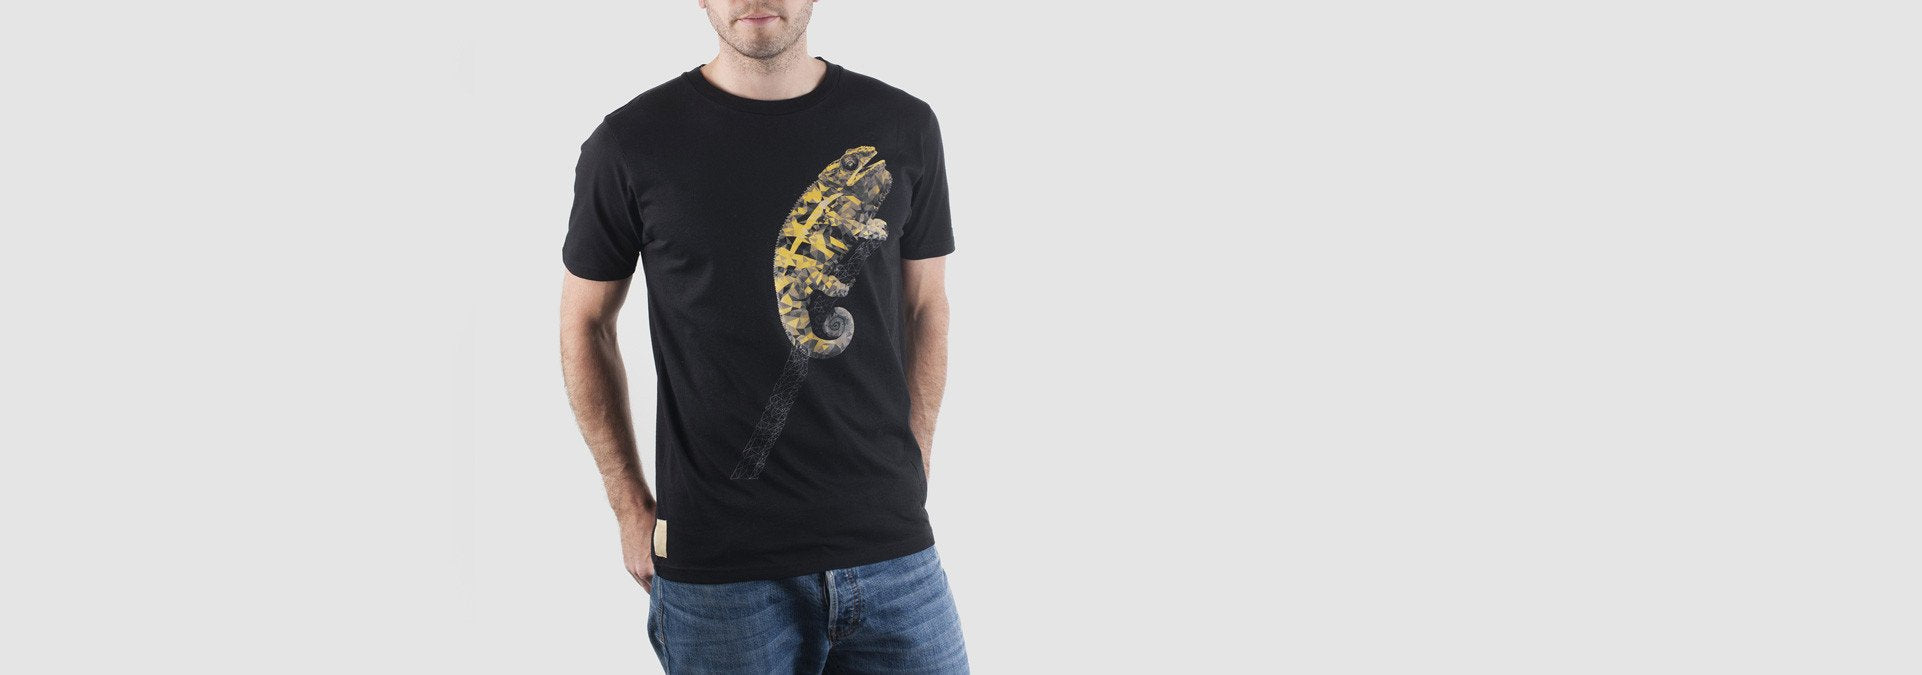 Chameleon T-Shirt Black